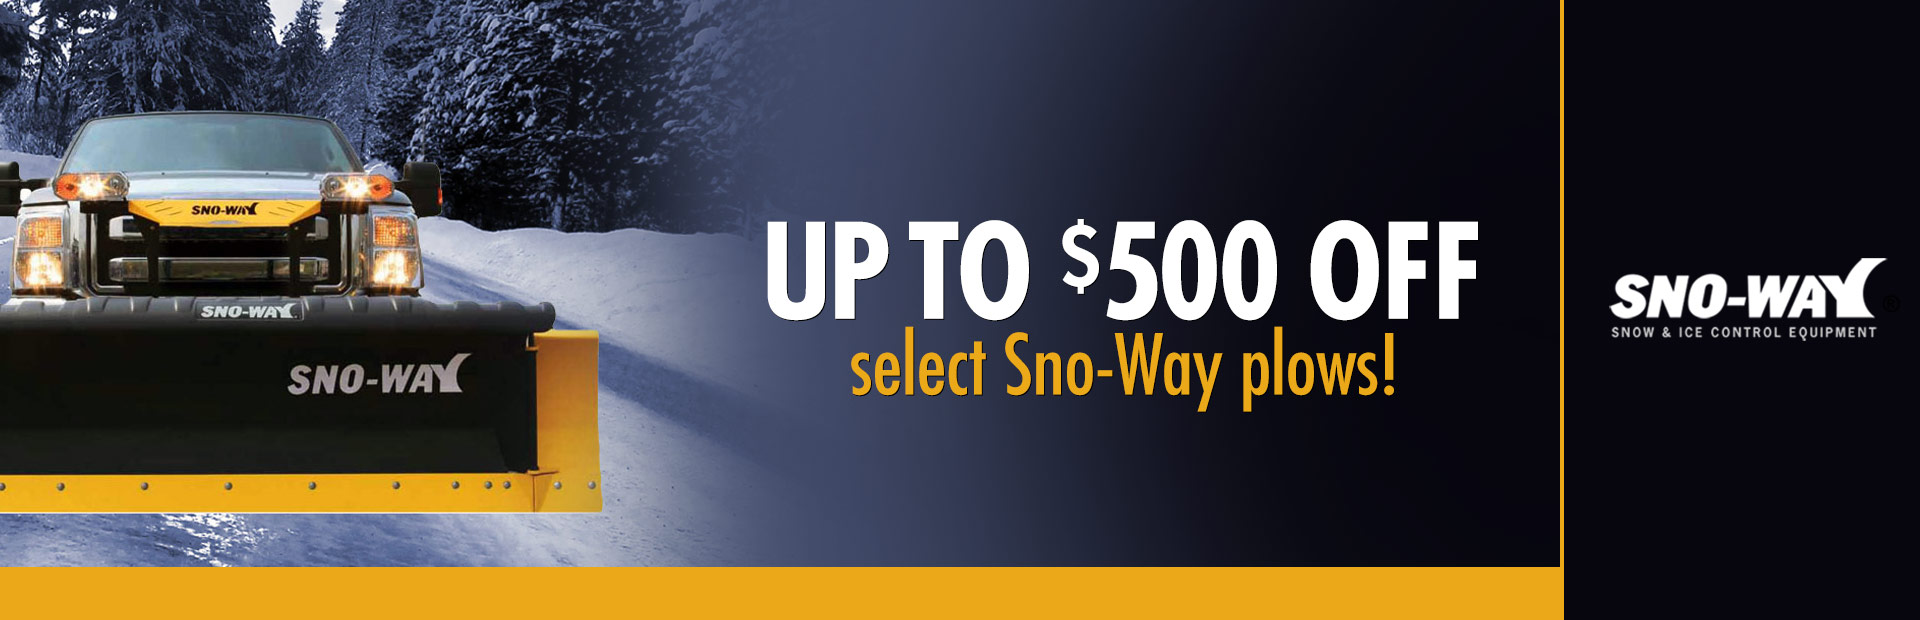 Sno-Way: Up To $500 Off